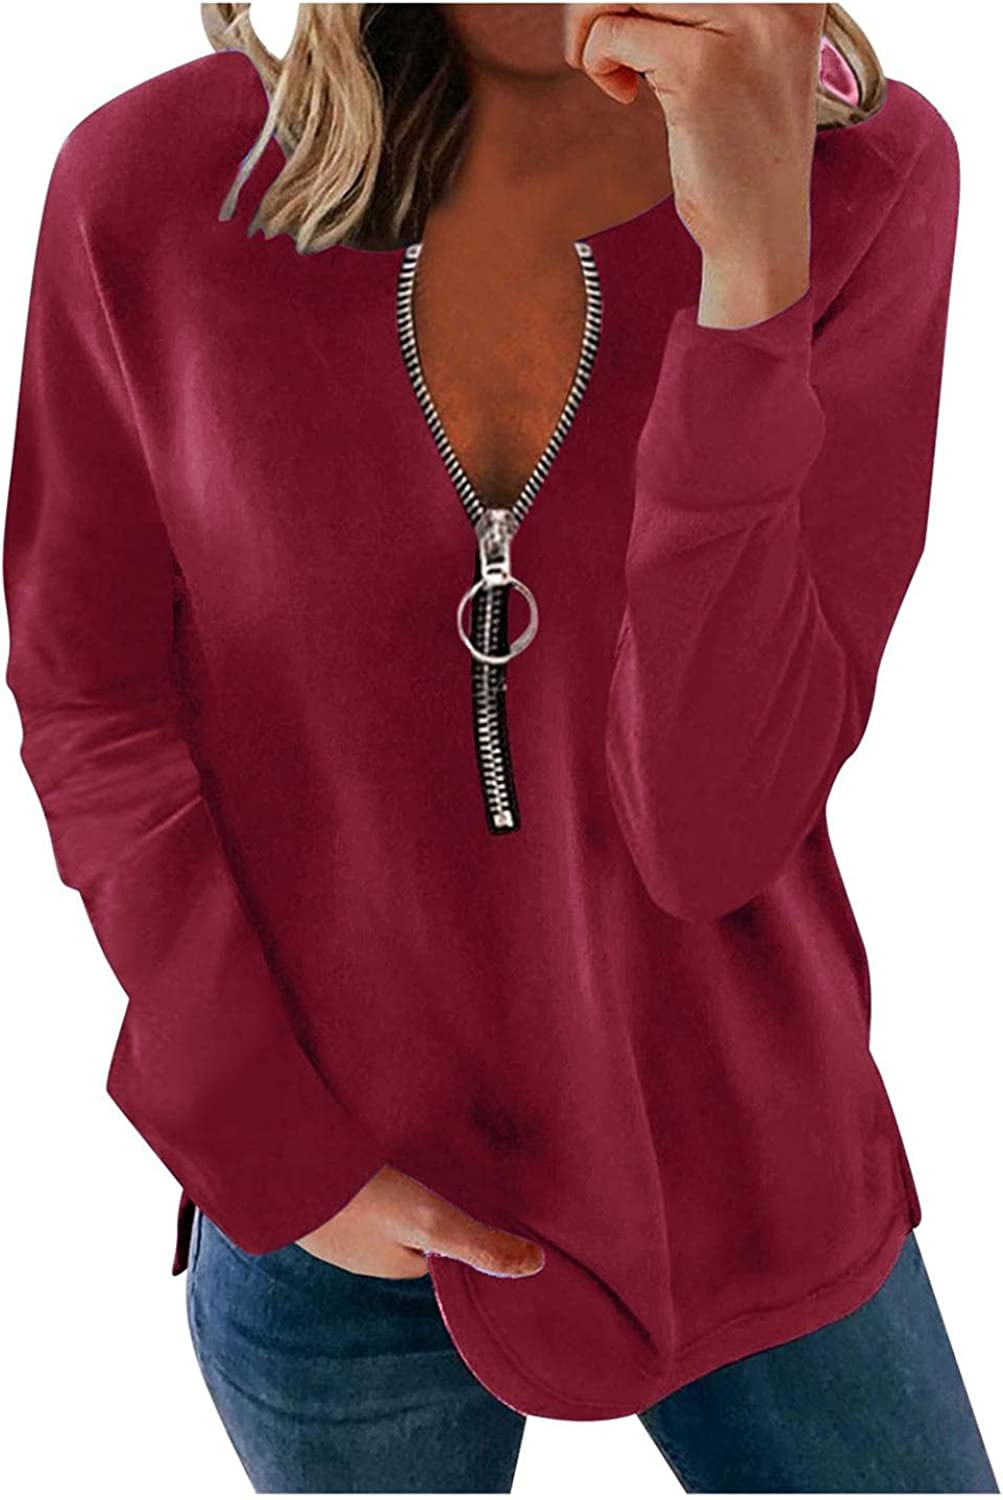 felwors Womens Tops and Blouses, Womens Zip Up Round Neck Tunic Tops Long Sleeve Shirts Casual Plus Size Blouse Tees